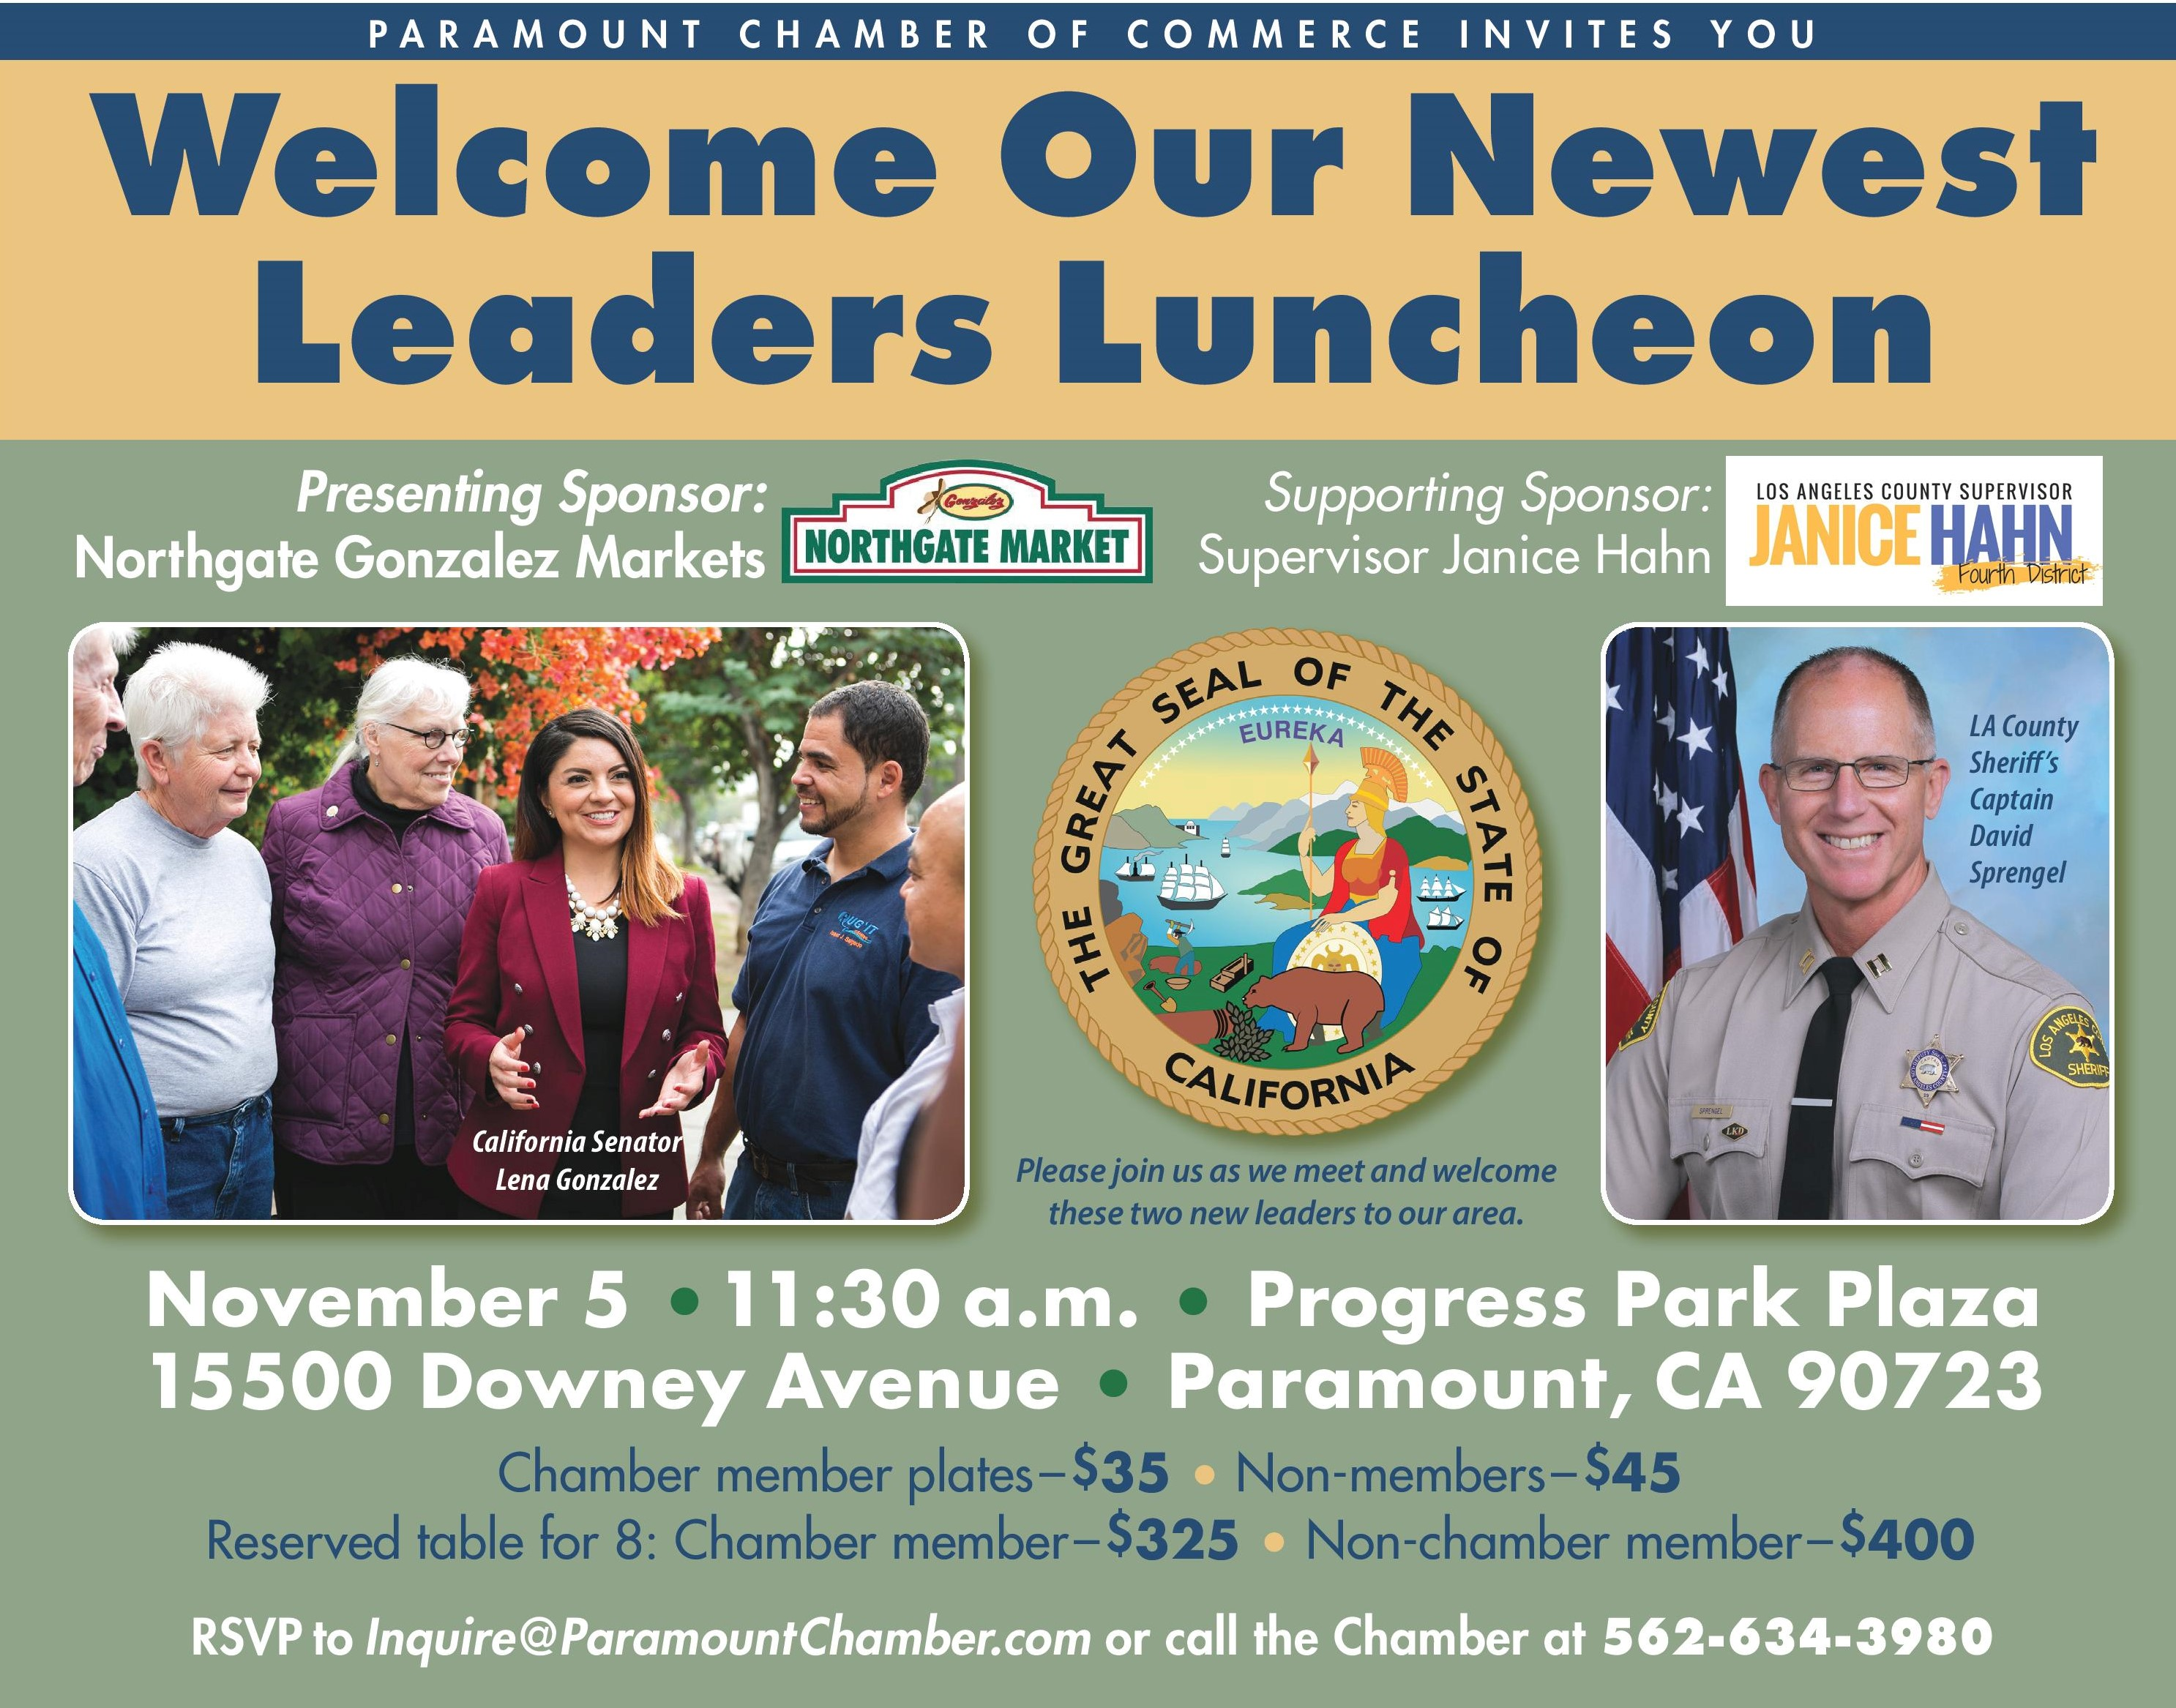 Welcome Our Newest Leaders Luncheon flyer-revised Oct 4-page-001